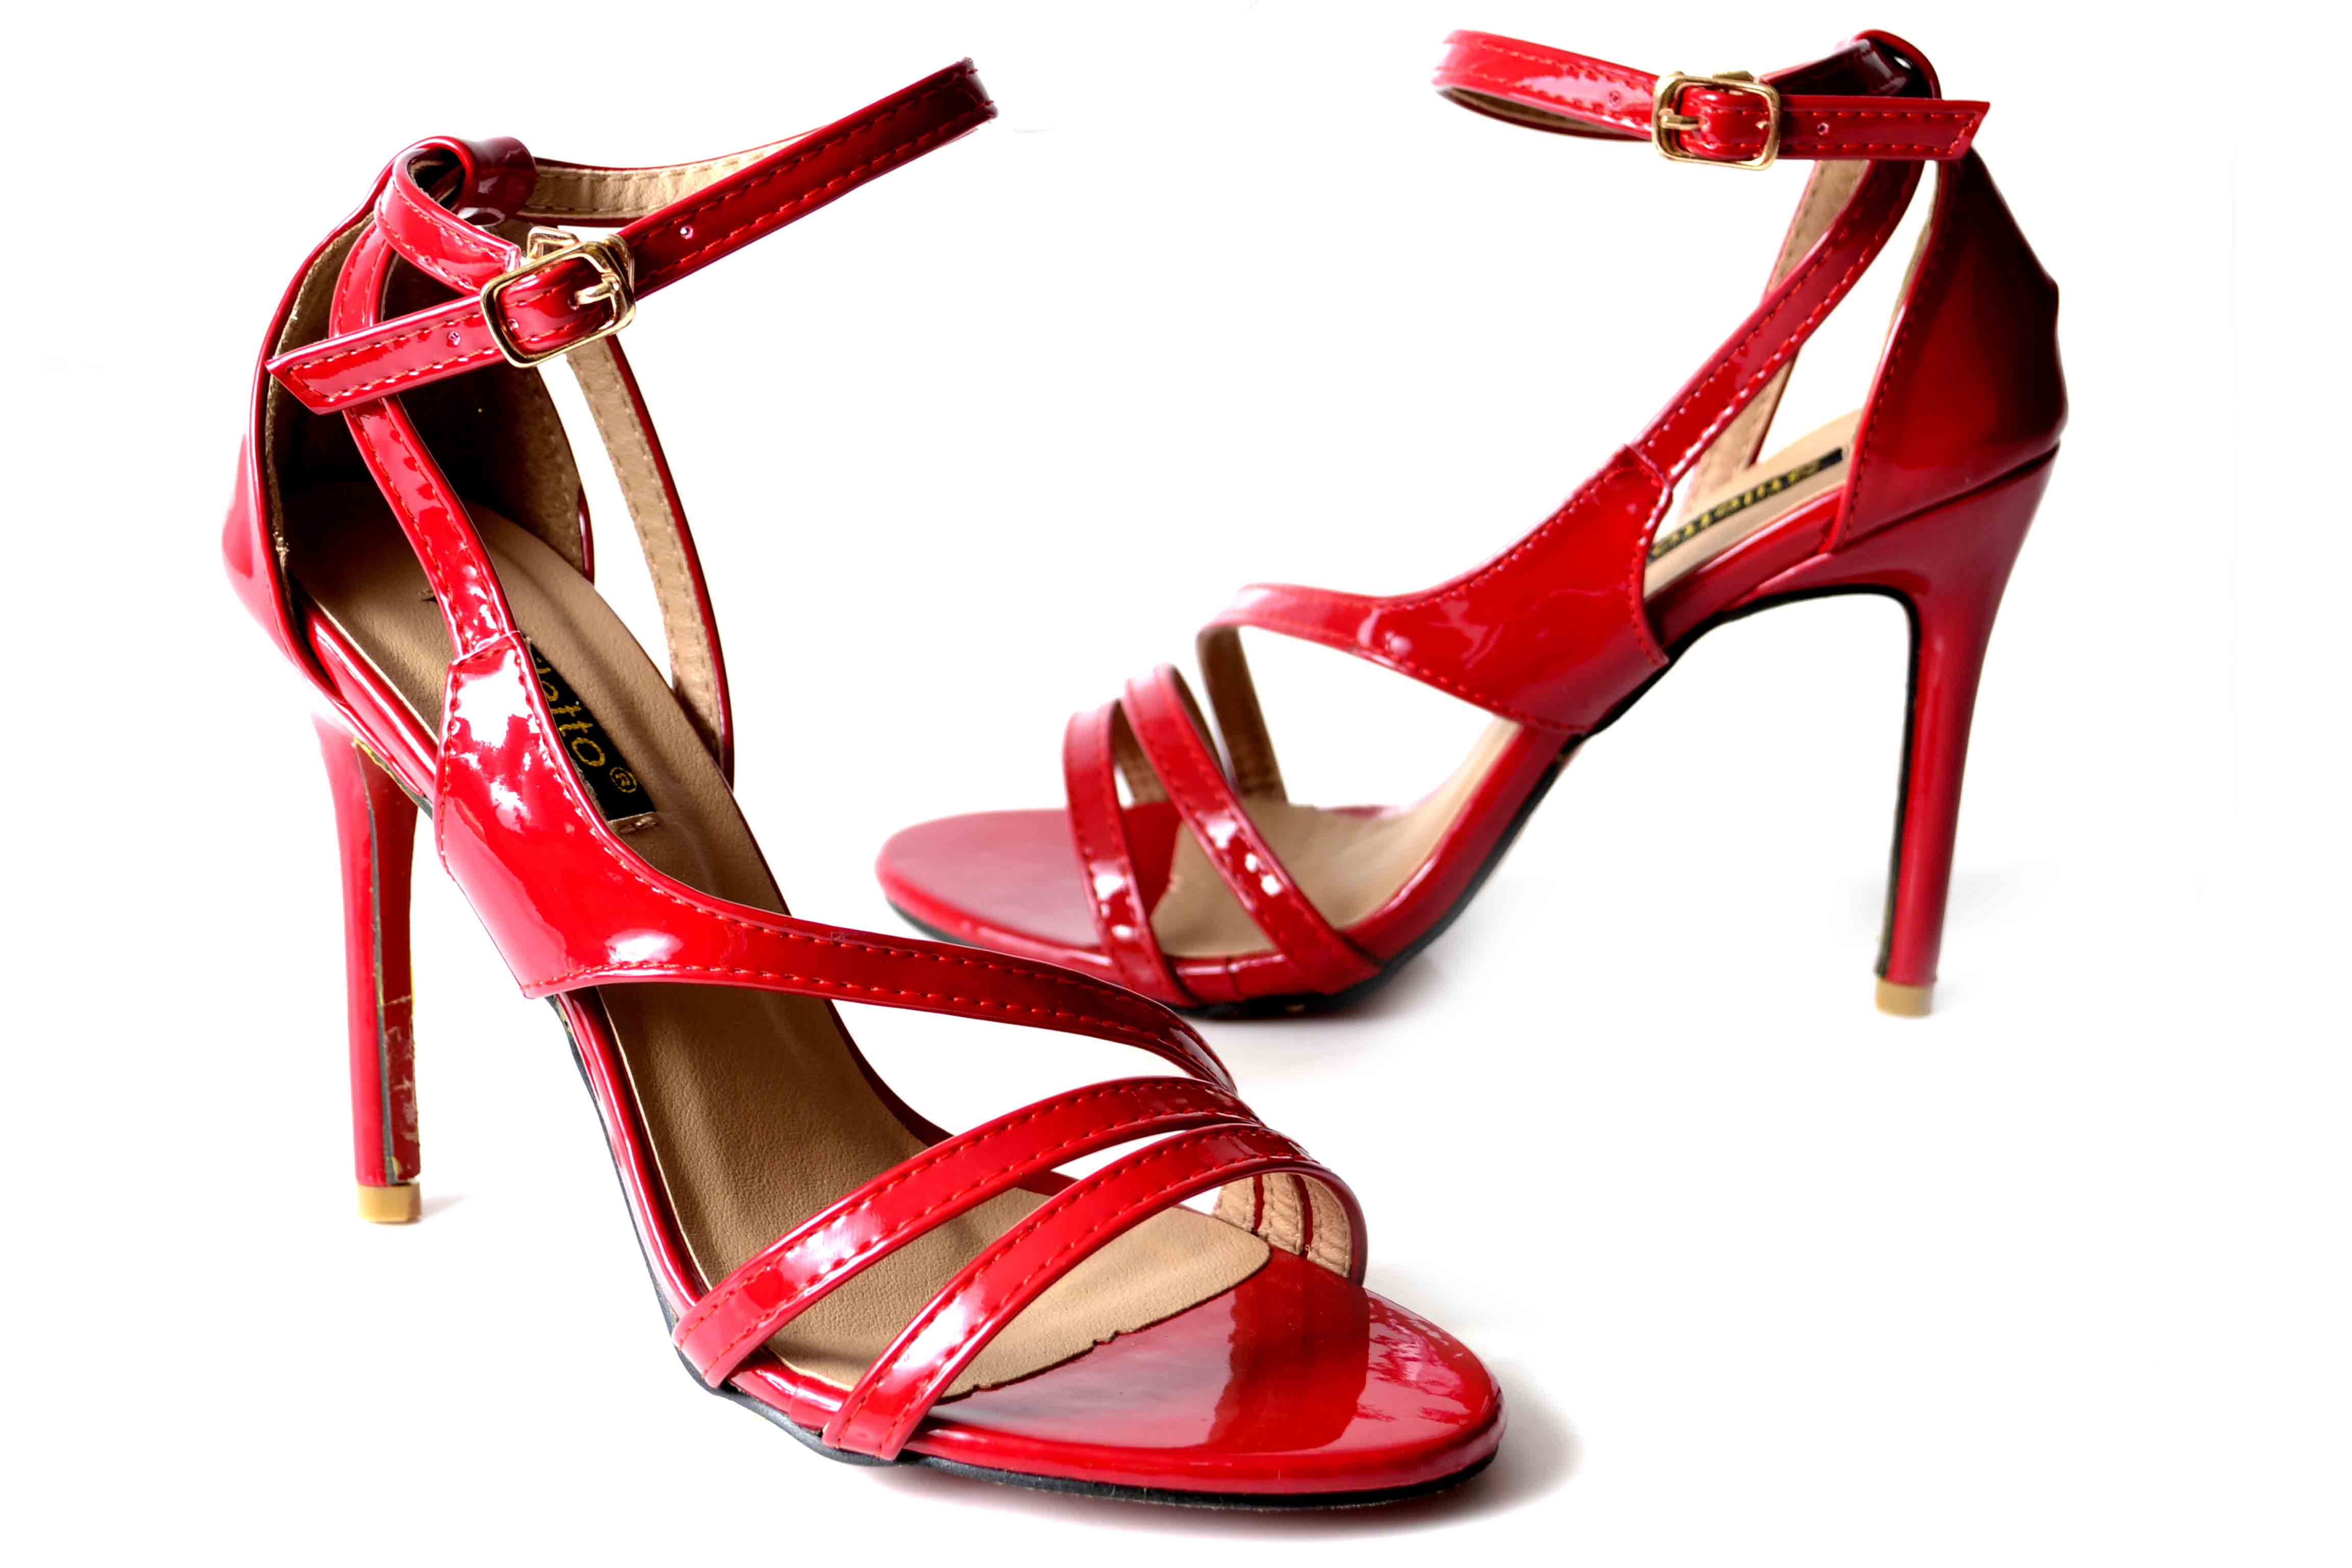 Metro-Shoes-Spring-Summer-Collection-2015-2016 (12)